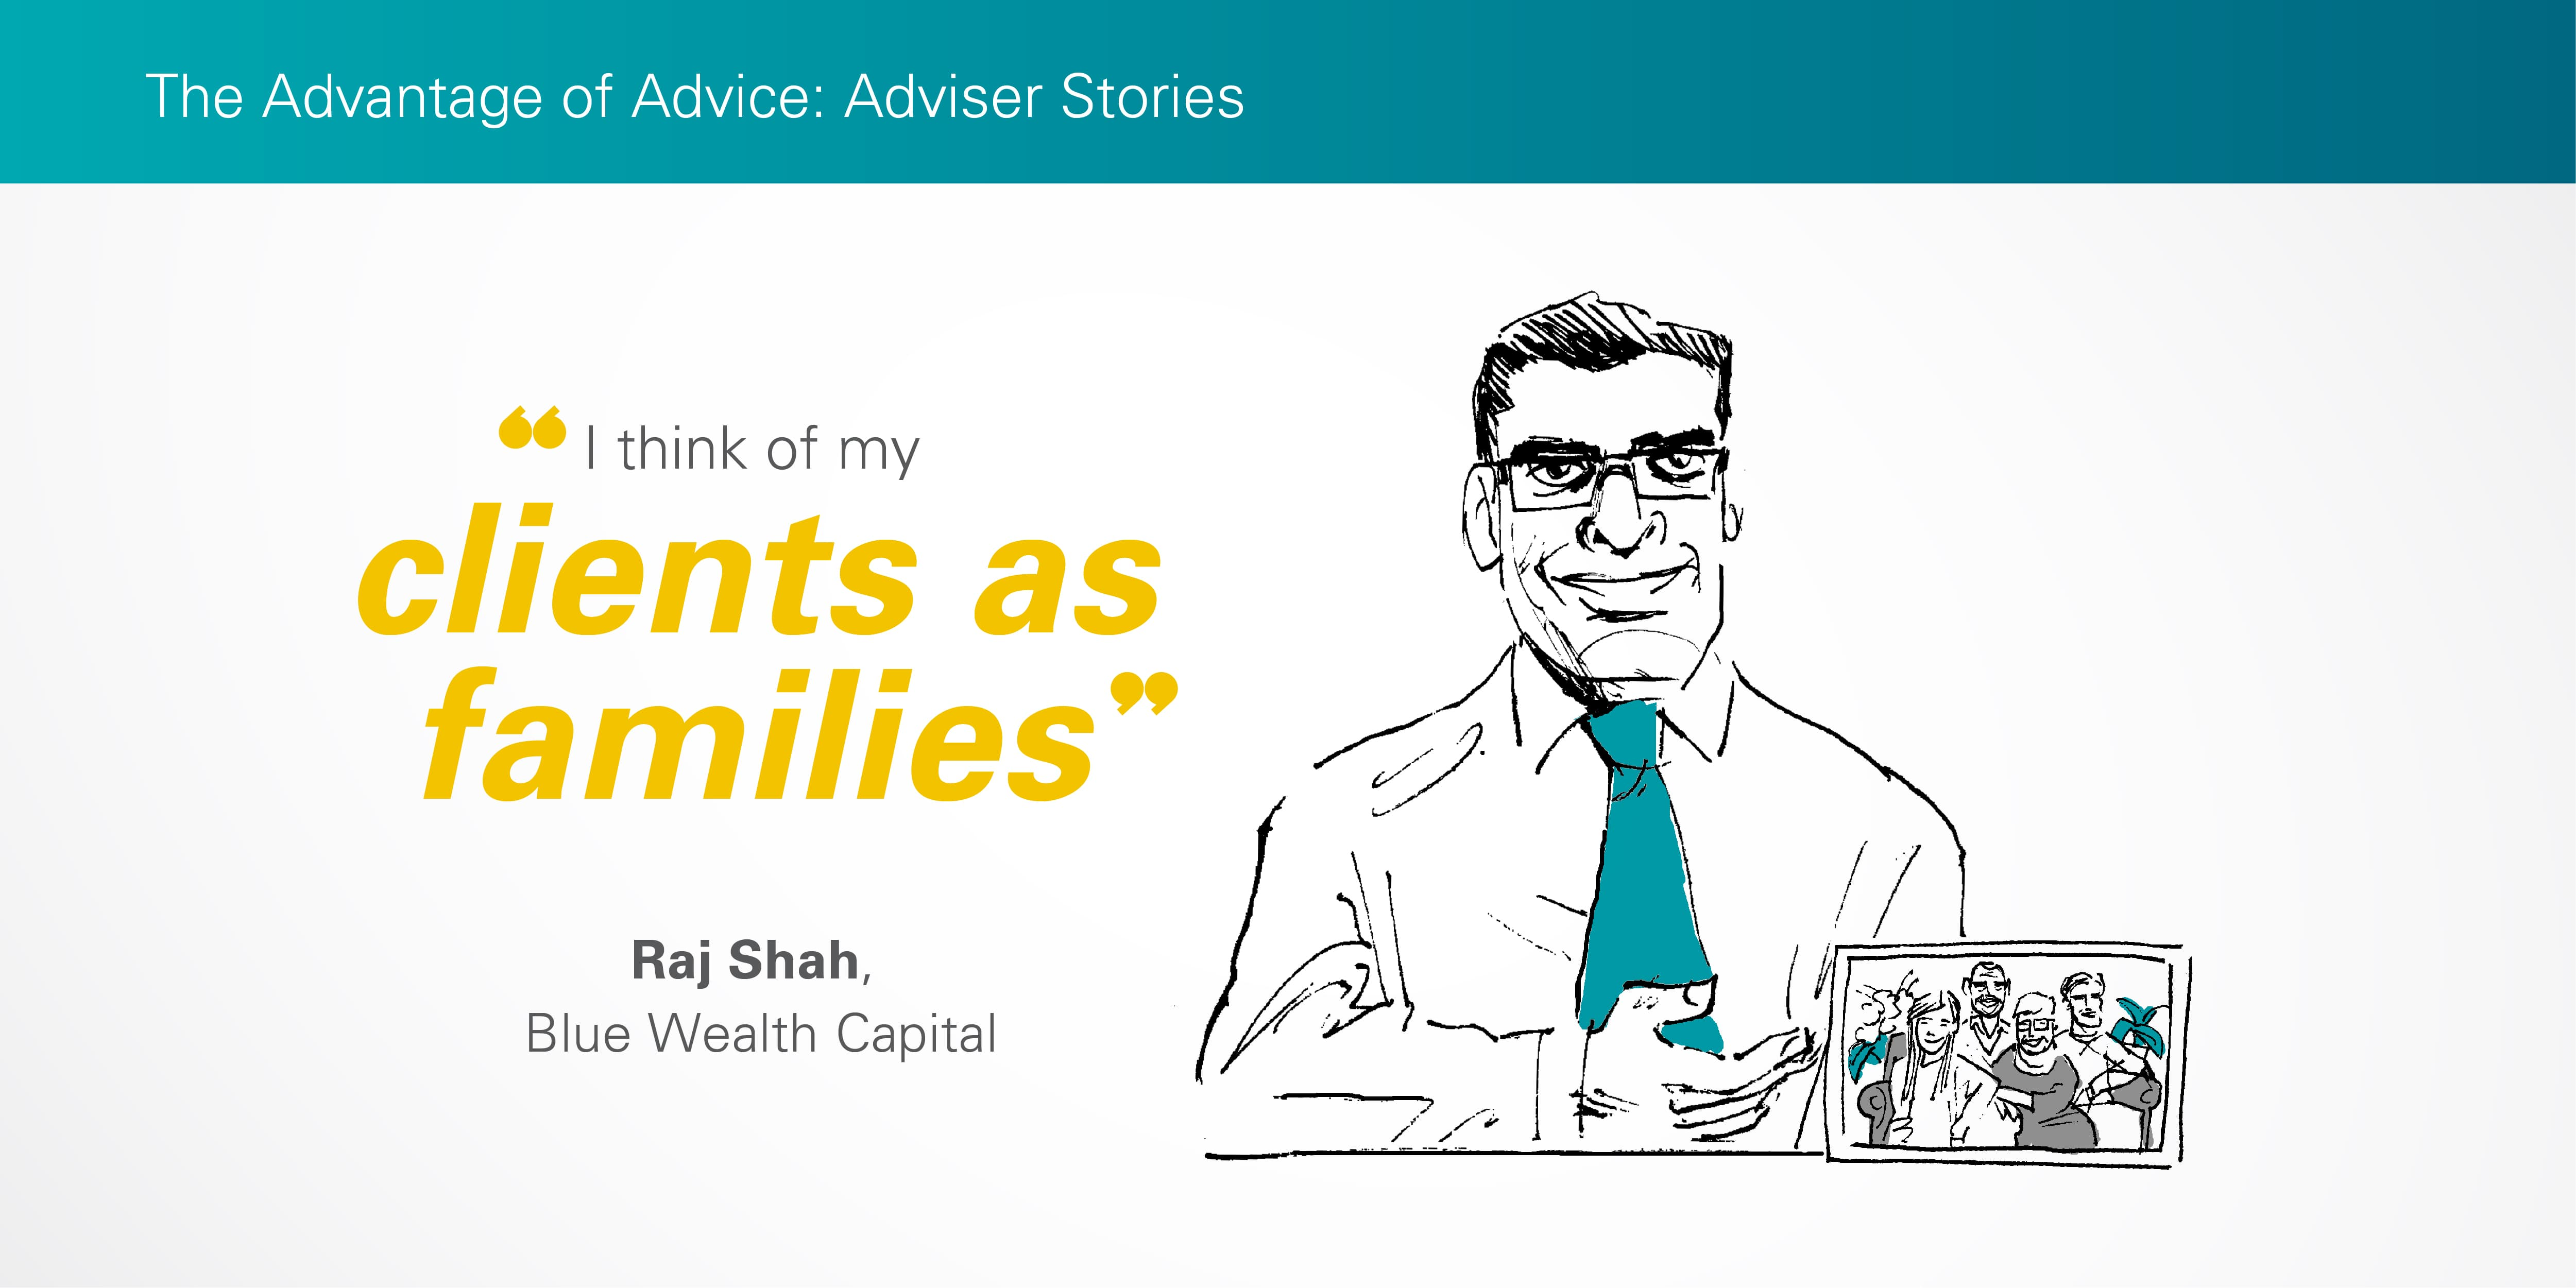 Illustration of Raj Shah showing a family picture